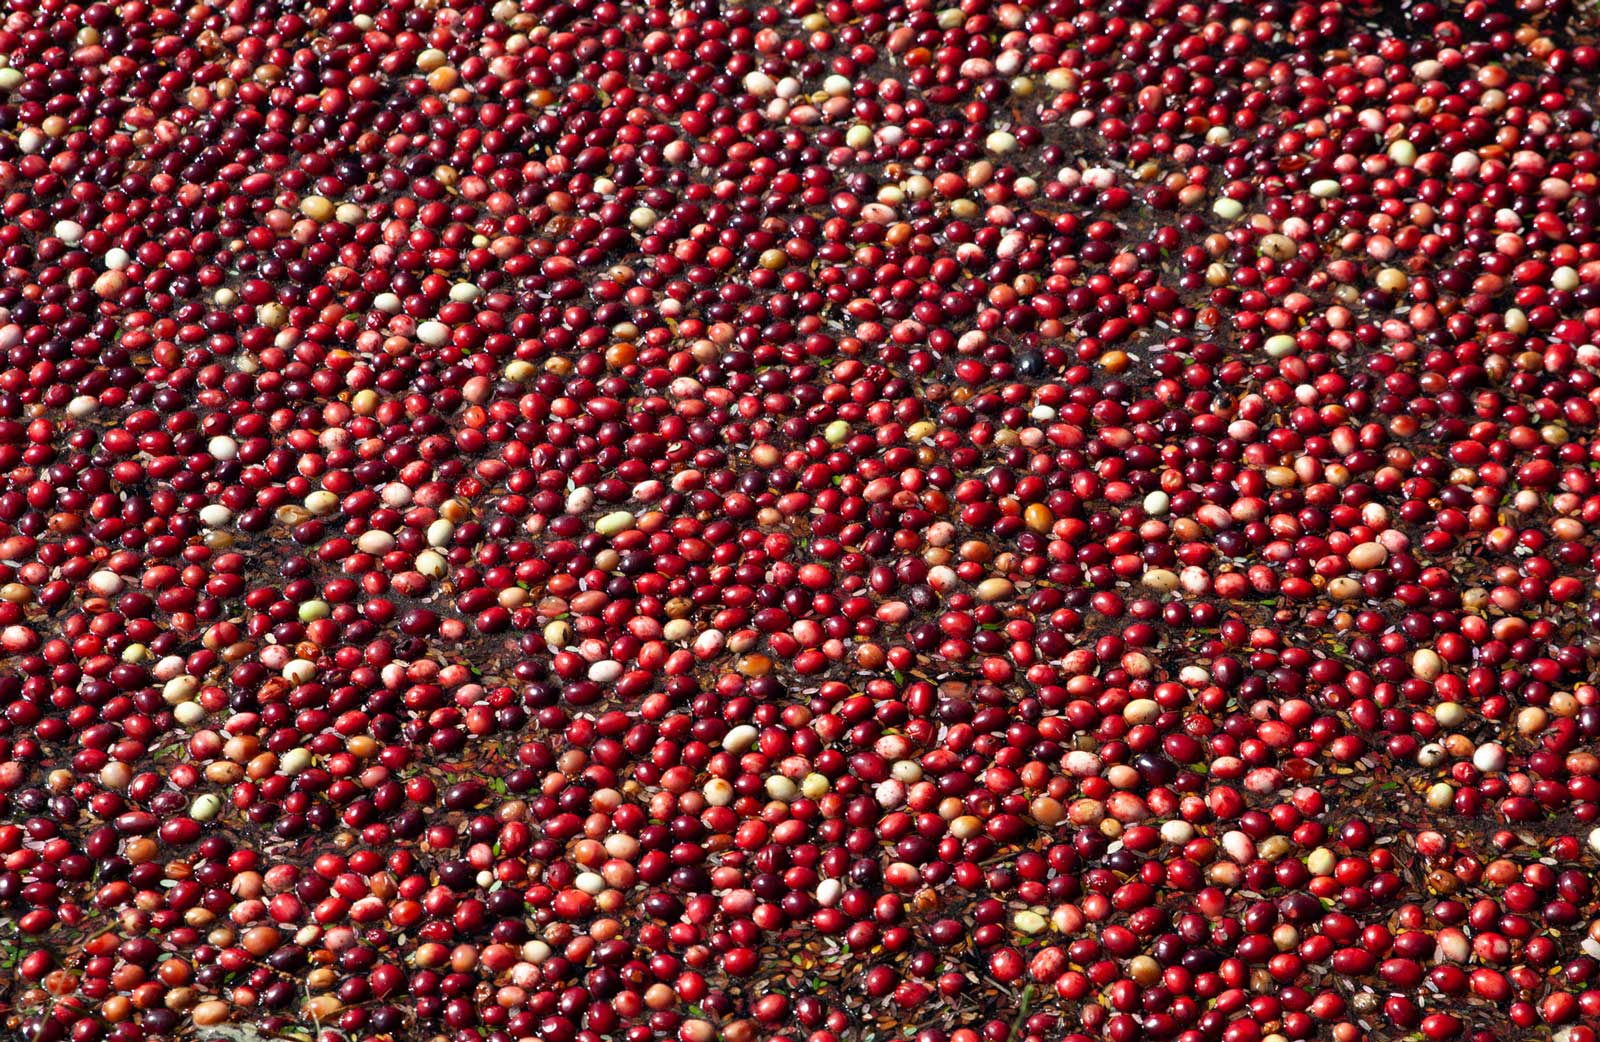 A sea of cranberries floating in the water.